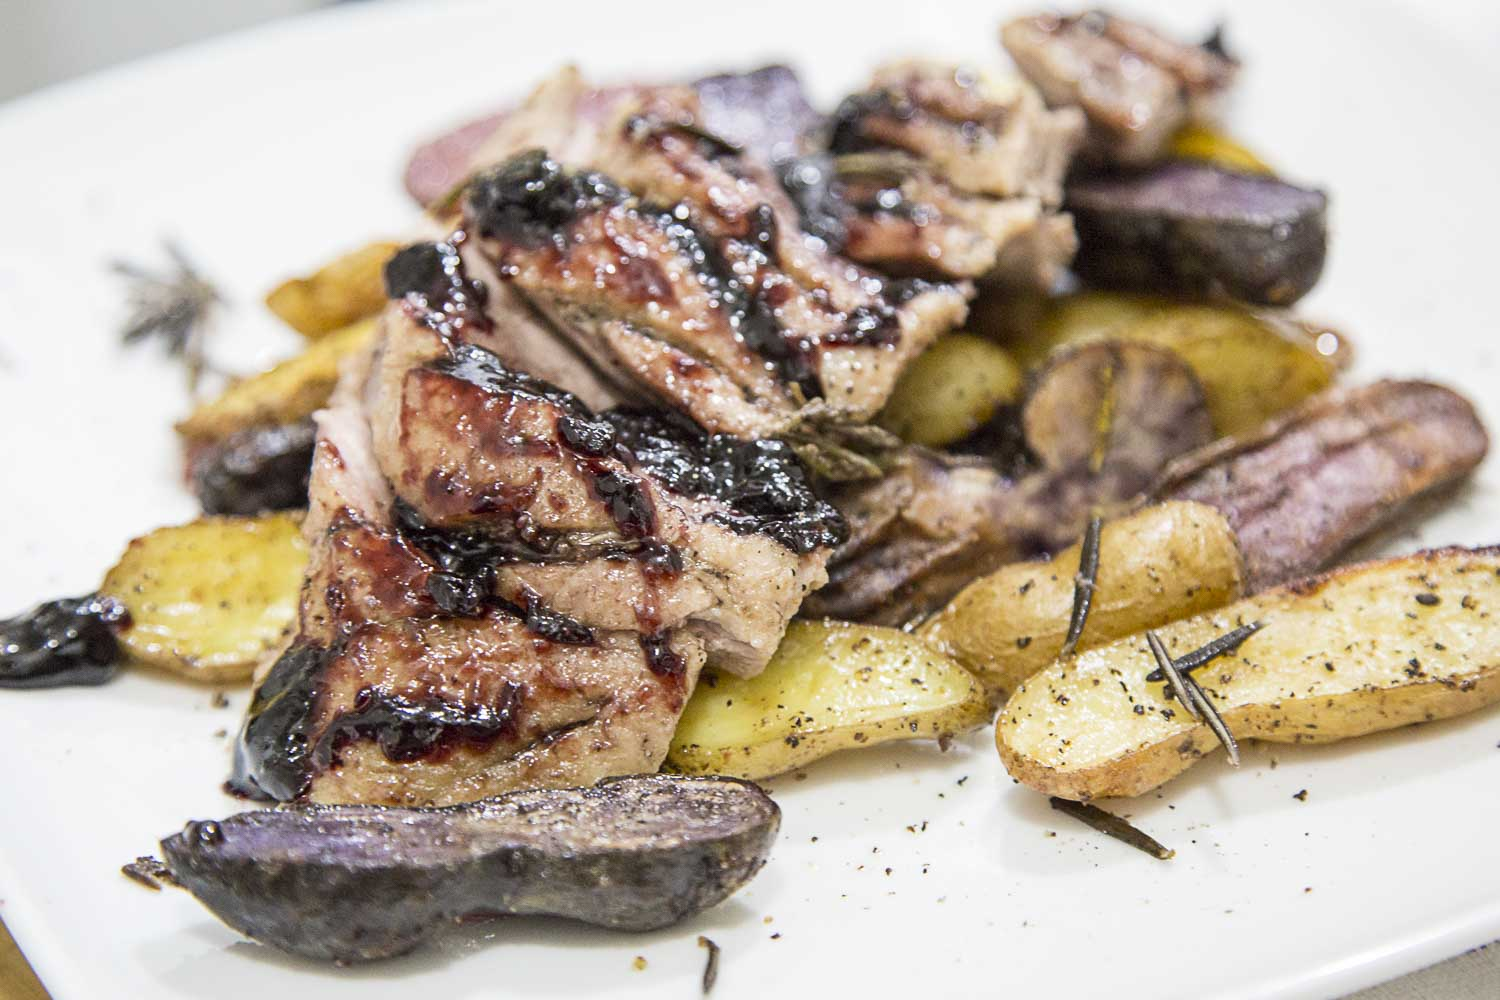 Roasted Duck and Fingerling Potatoes